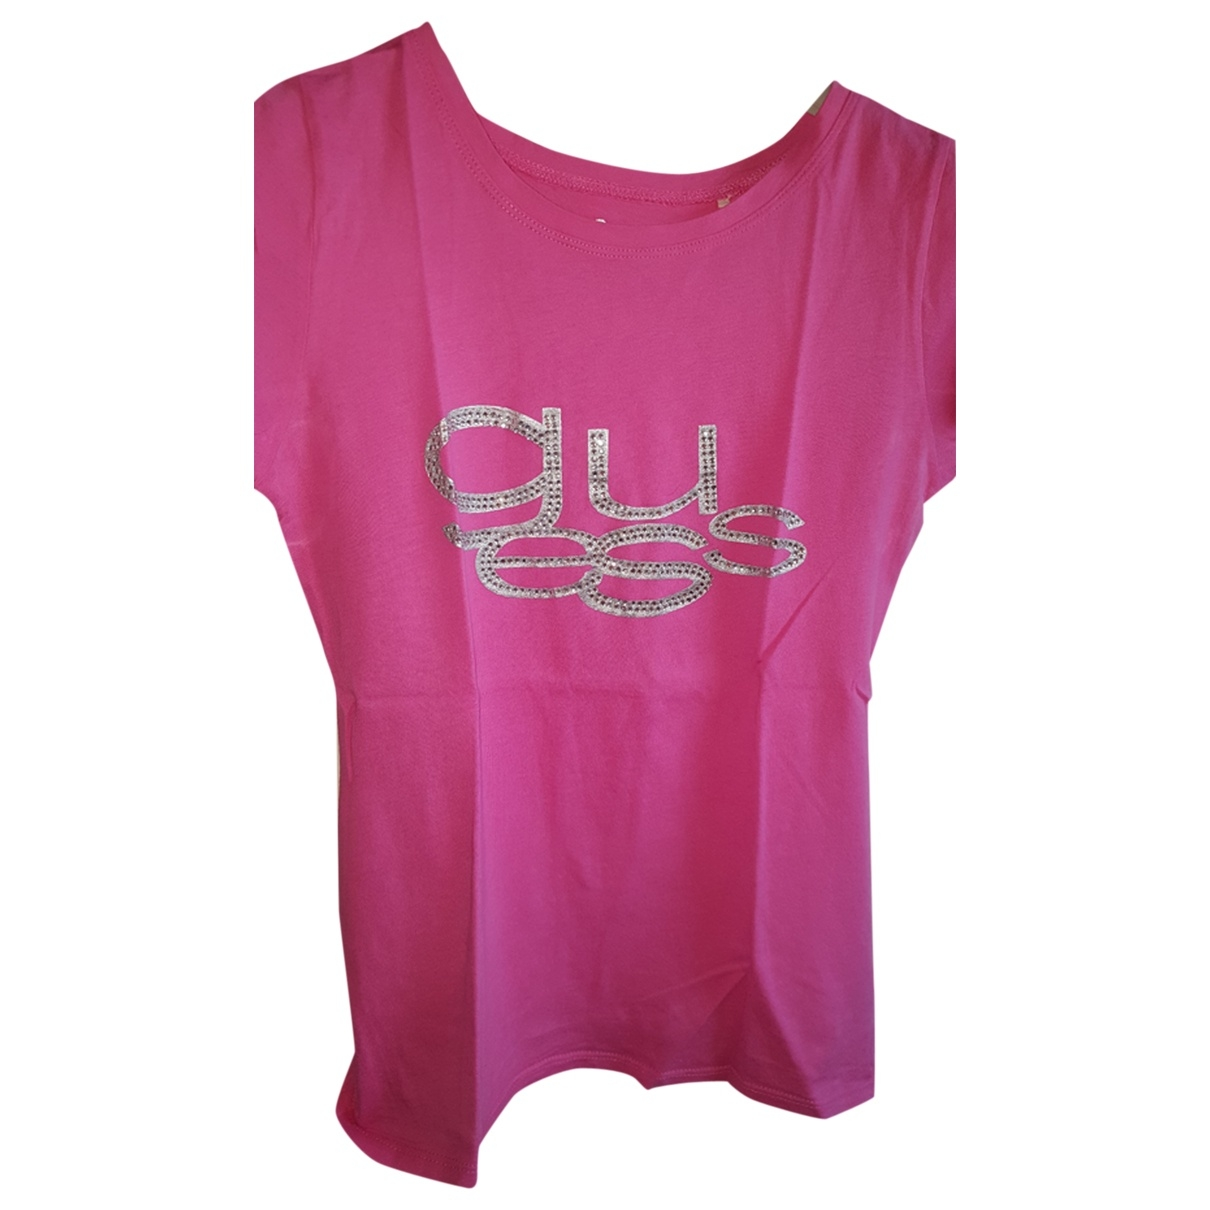 Guess \N Pink Cotton  top for Women S International